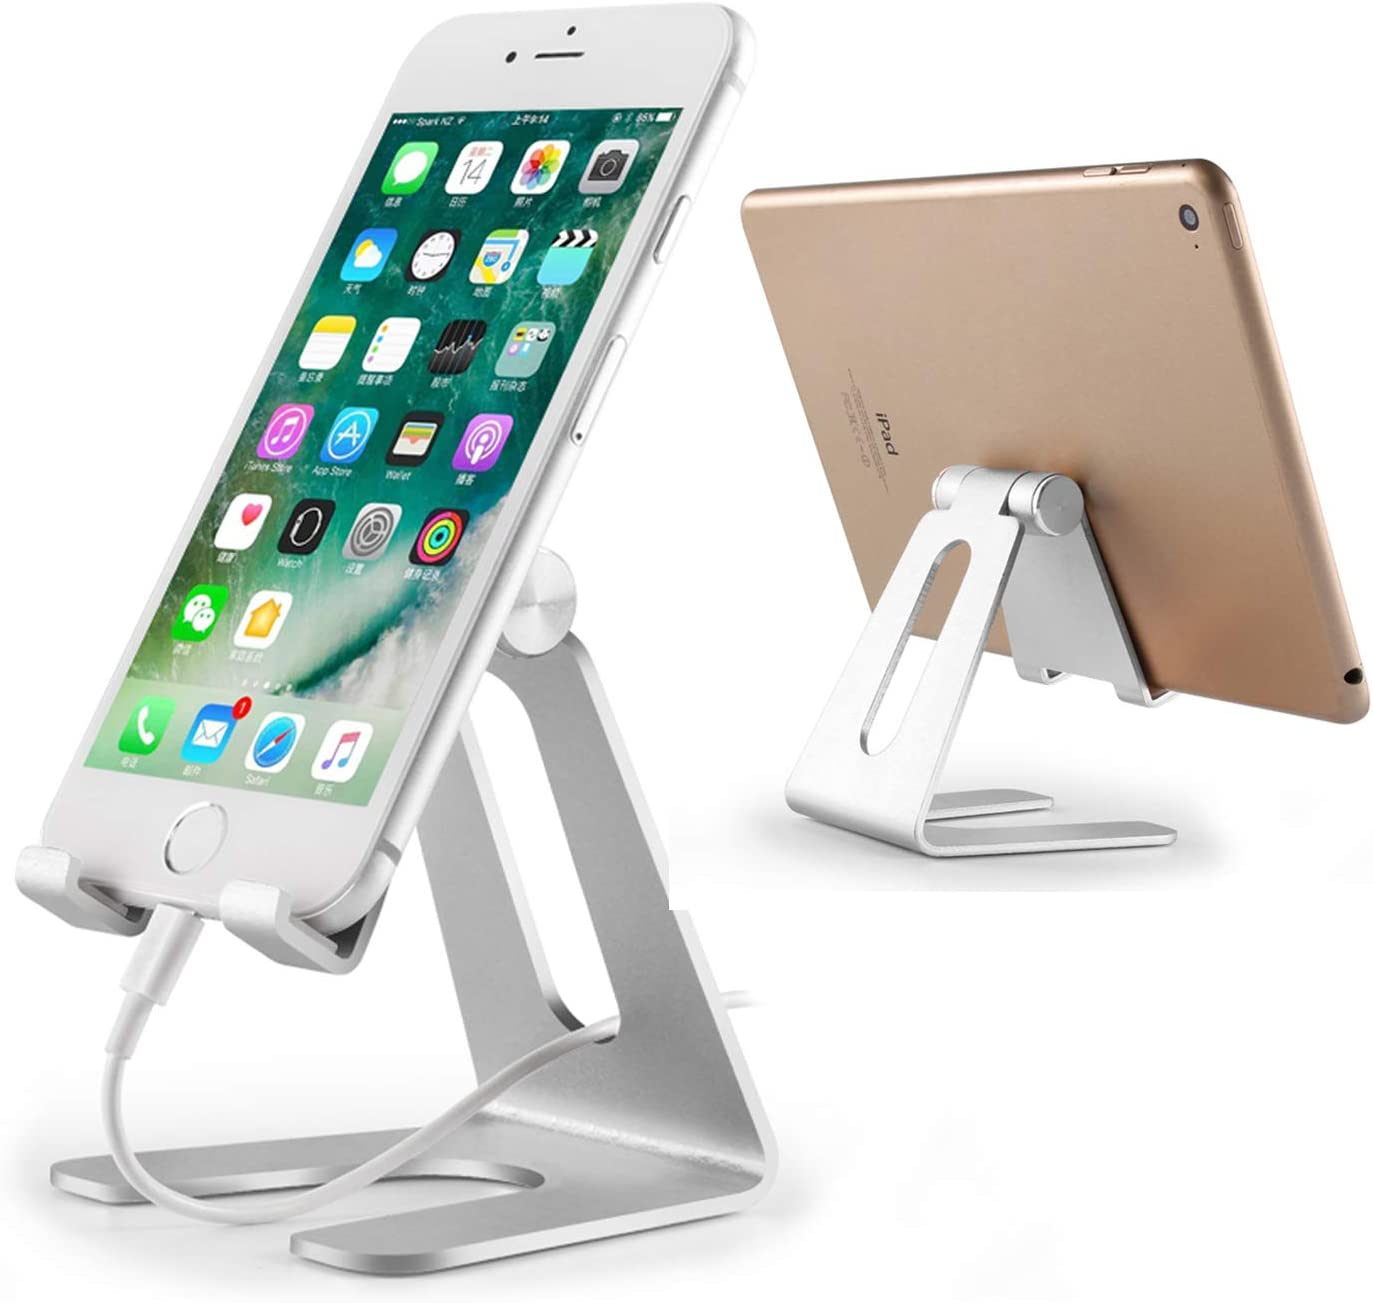 Adjustable Phone Stand for Desk, Tablet Stand Holders, Cell Phone Stands, Mobile Stand, Desktop Display Stand for Mobile Phone iPad Mini Air Samsung Tablet (Silver)